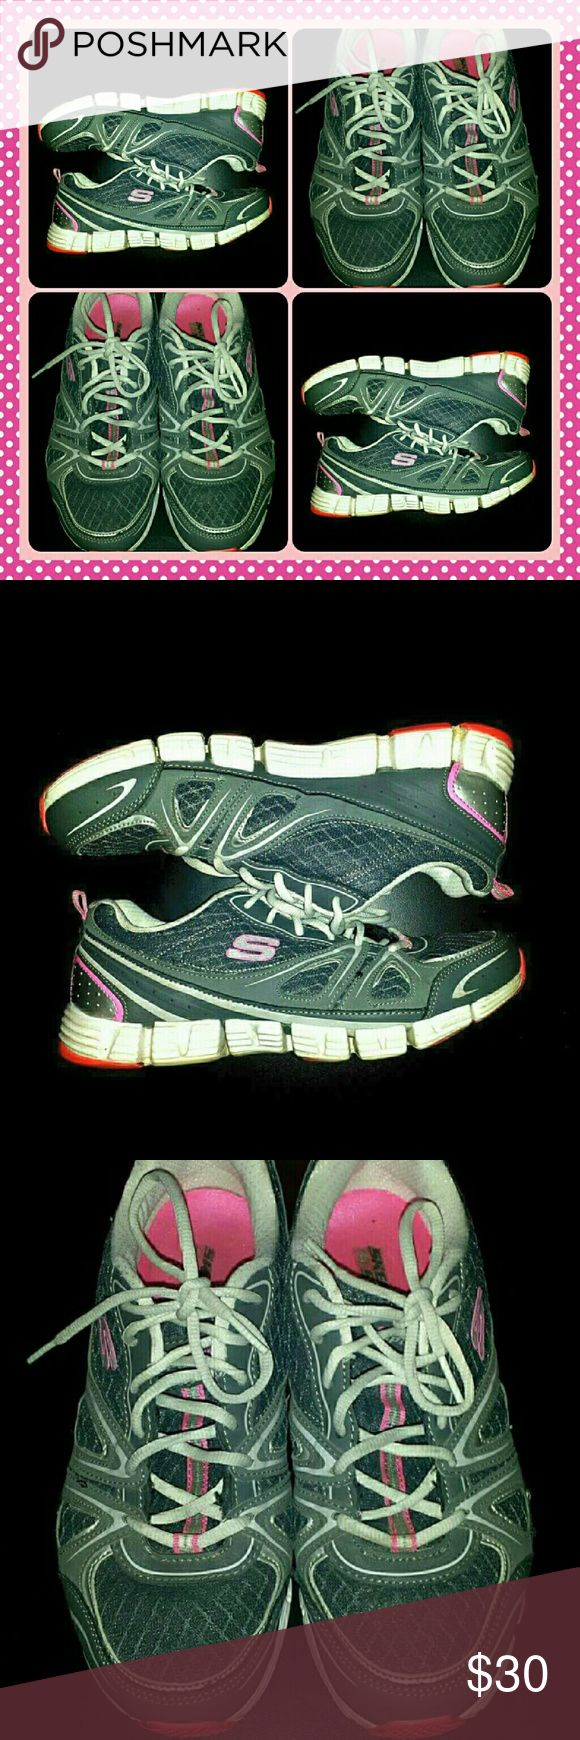 🔮 SKECHERS PINK SILVER ATHLETIC TENNIS SHOES AWESOME LOOKIN  ladies SKECHERS athletic shoes. ..they are a LADIES SIZE-10 and in AWESOME pre-luved condition Skechers Shoes Athletic Shoes